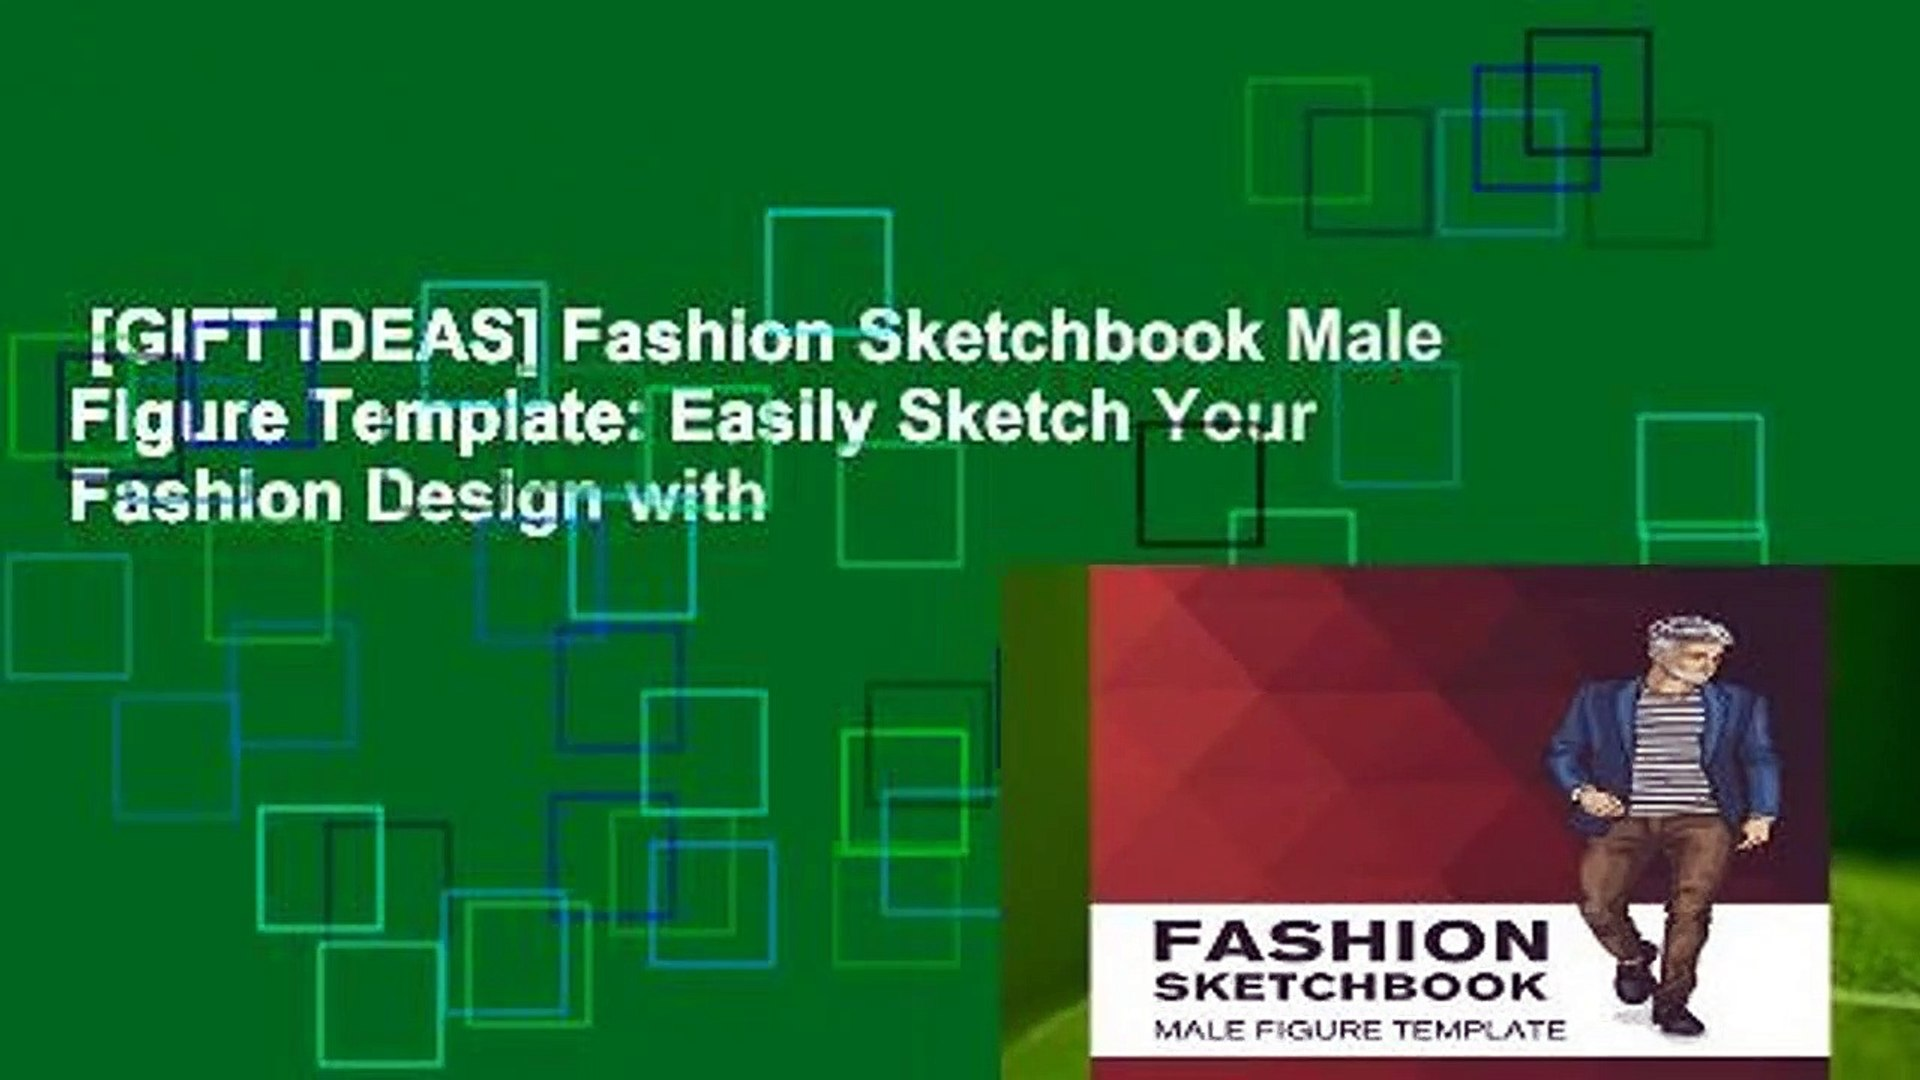 Essentials Fashion Sketchbook 366 Figure Templates To Create Your Own Designs Fashion Sketchpad Online Free Hindi To English Grammar Book Pdf Free Download